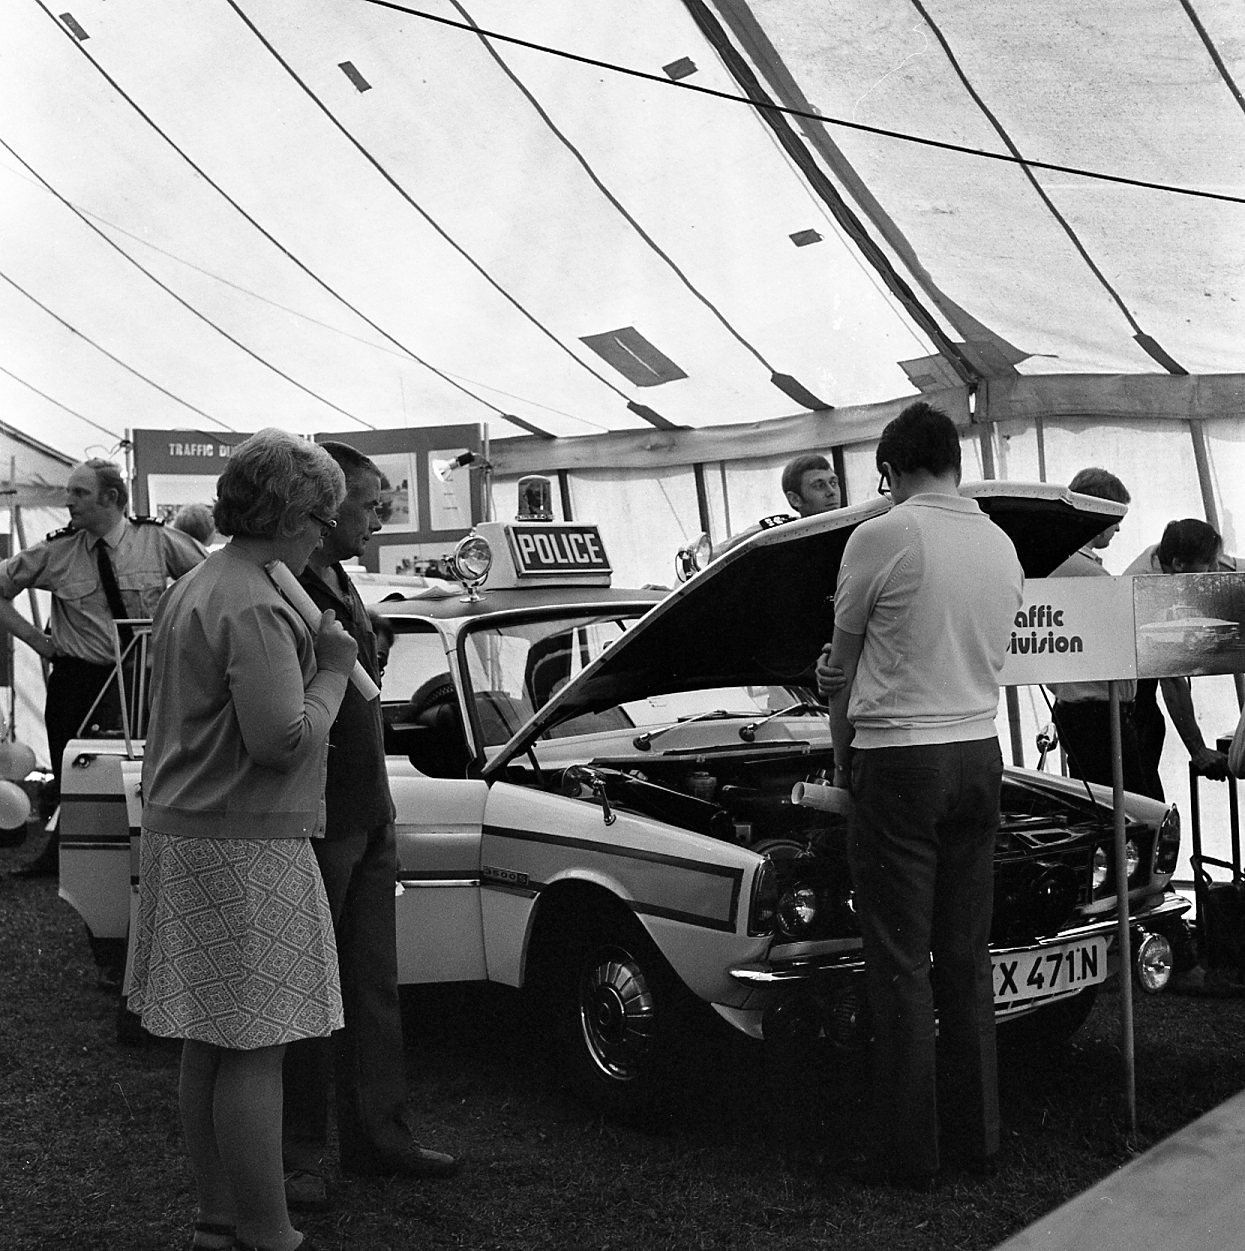 A Traffic Patrol Car on display at the Hertfordshire Show.